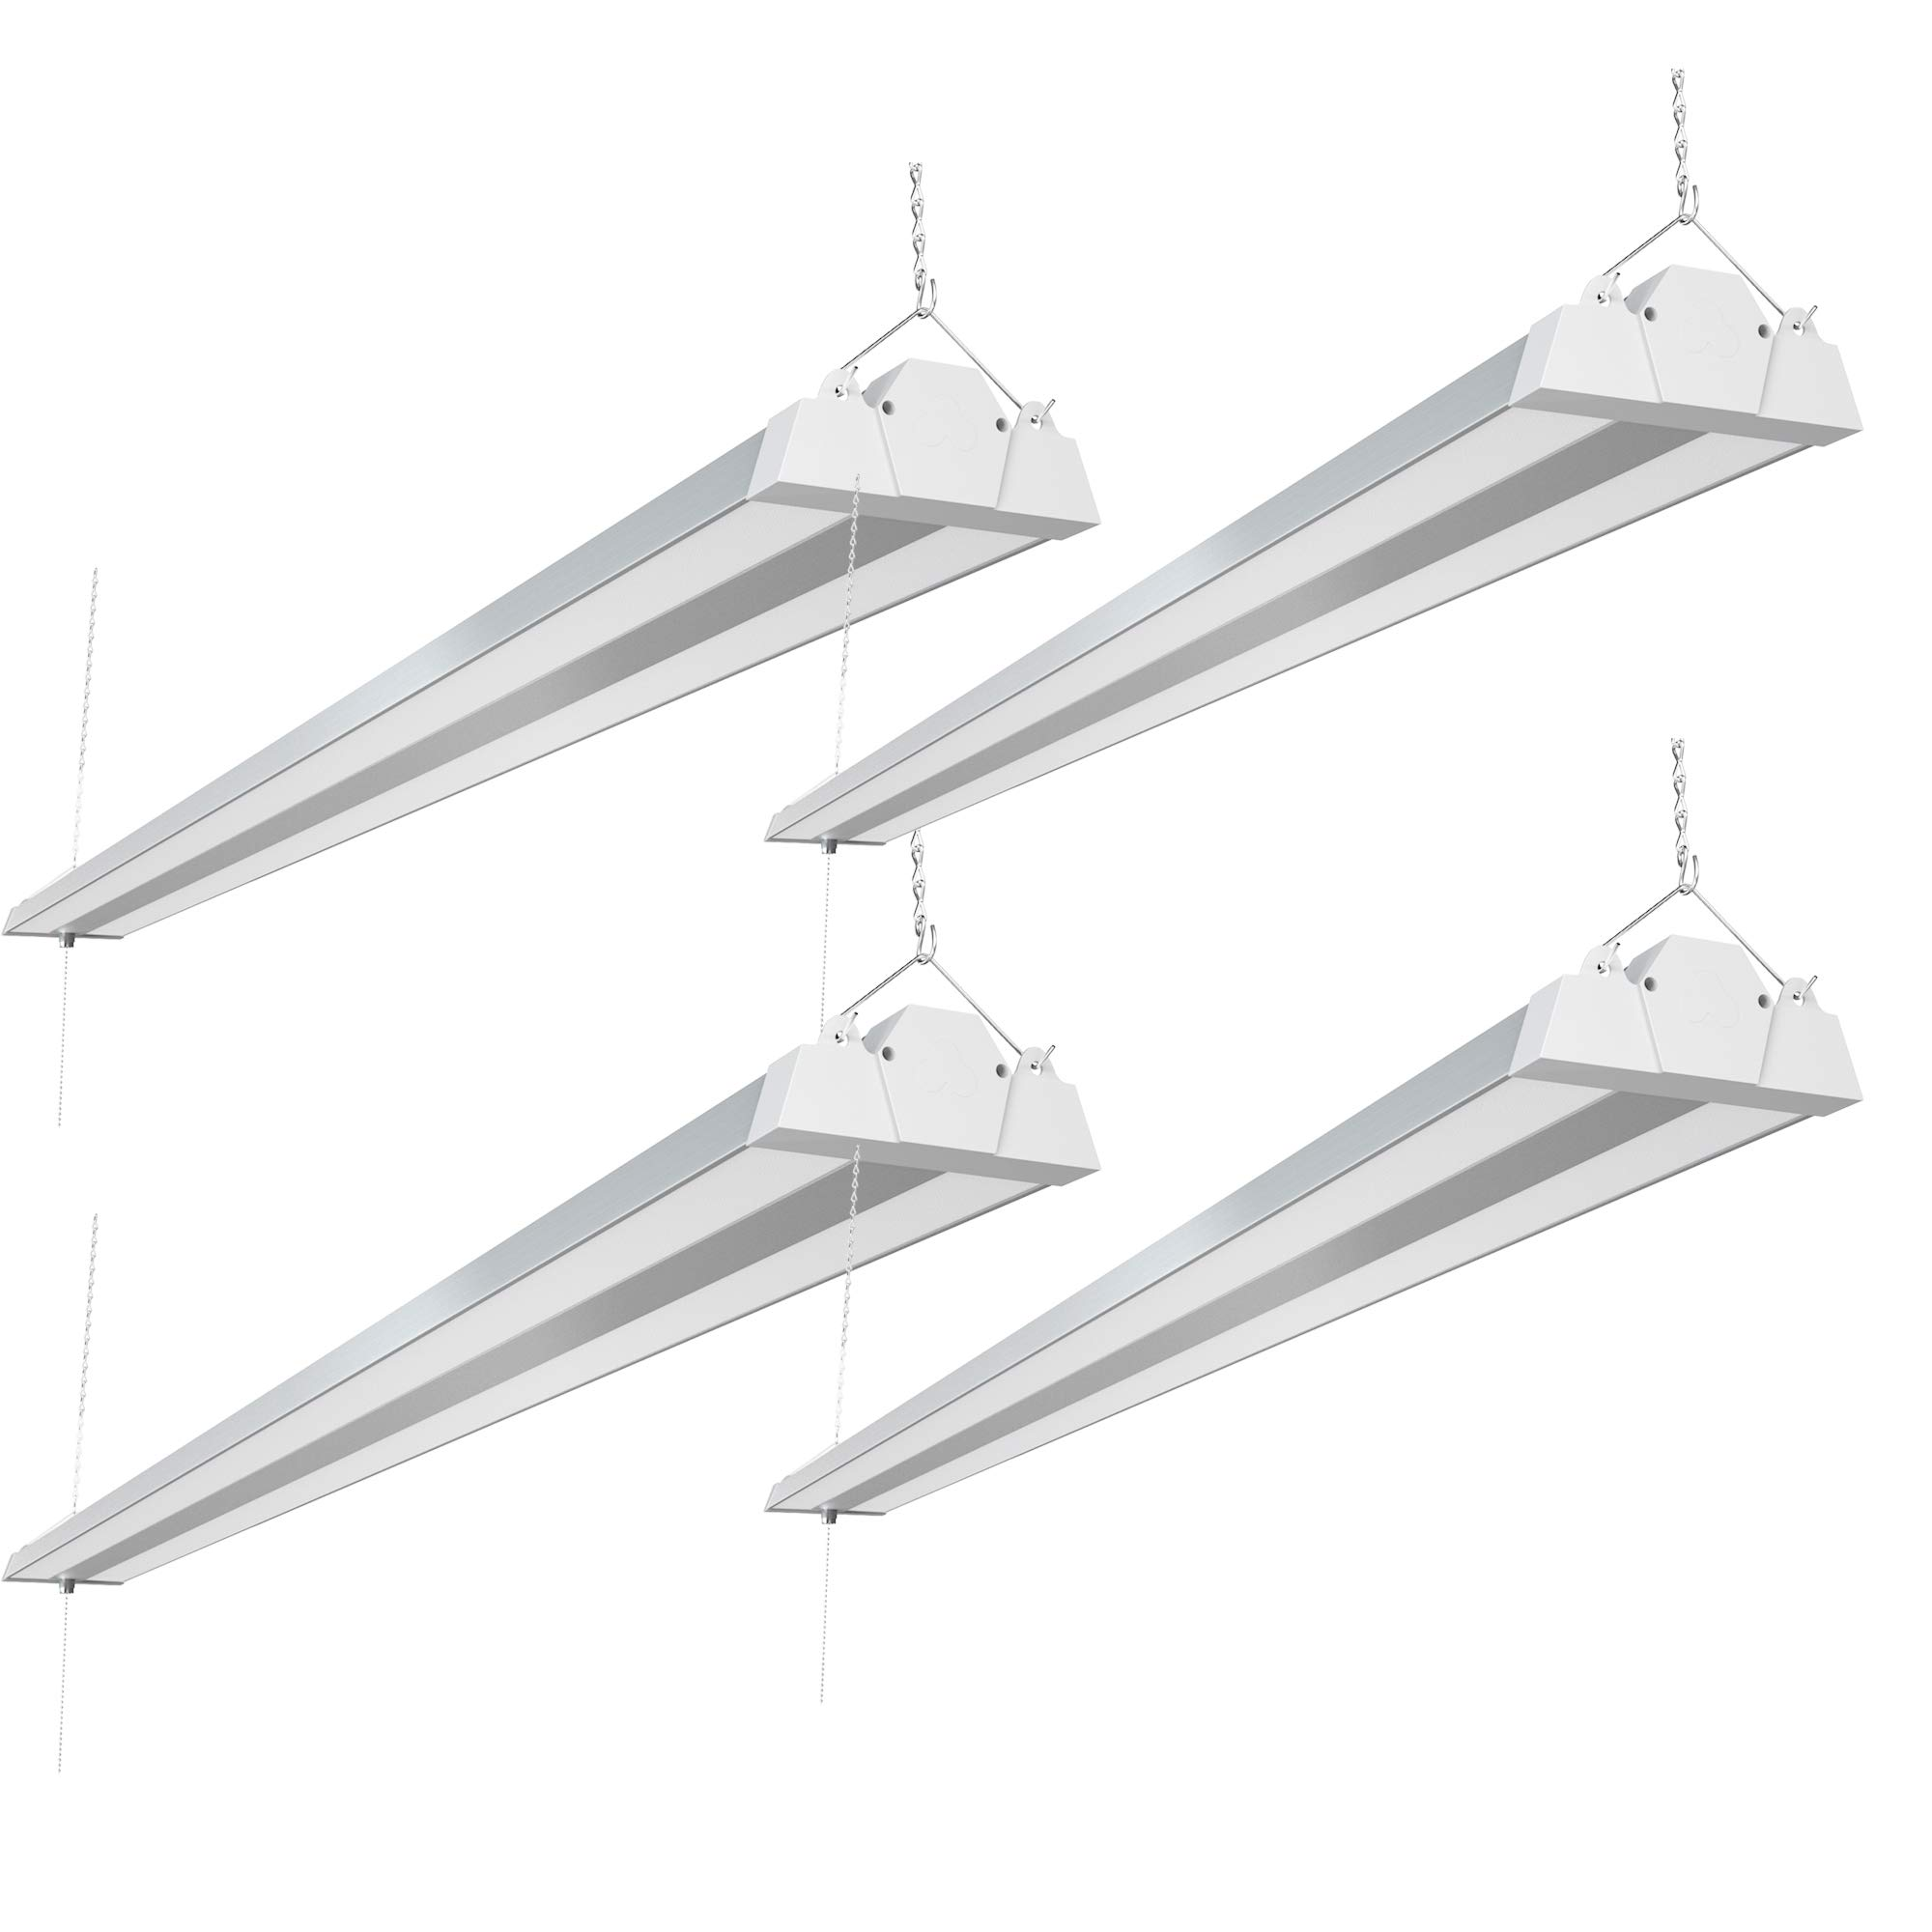 Freelicht 8FT LED Shop Light, 100W, 11000 Lumen, 5000K Daylight, 8 Foot LED Linear Fixtures for Garage, Workshop, Plugin with Power Cord, Pull Chain, ETL Certified, 4 Pack